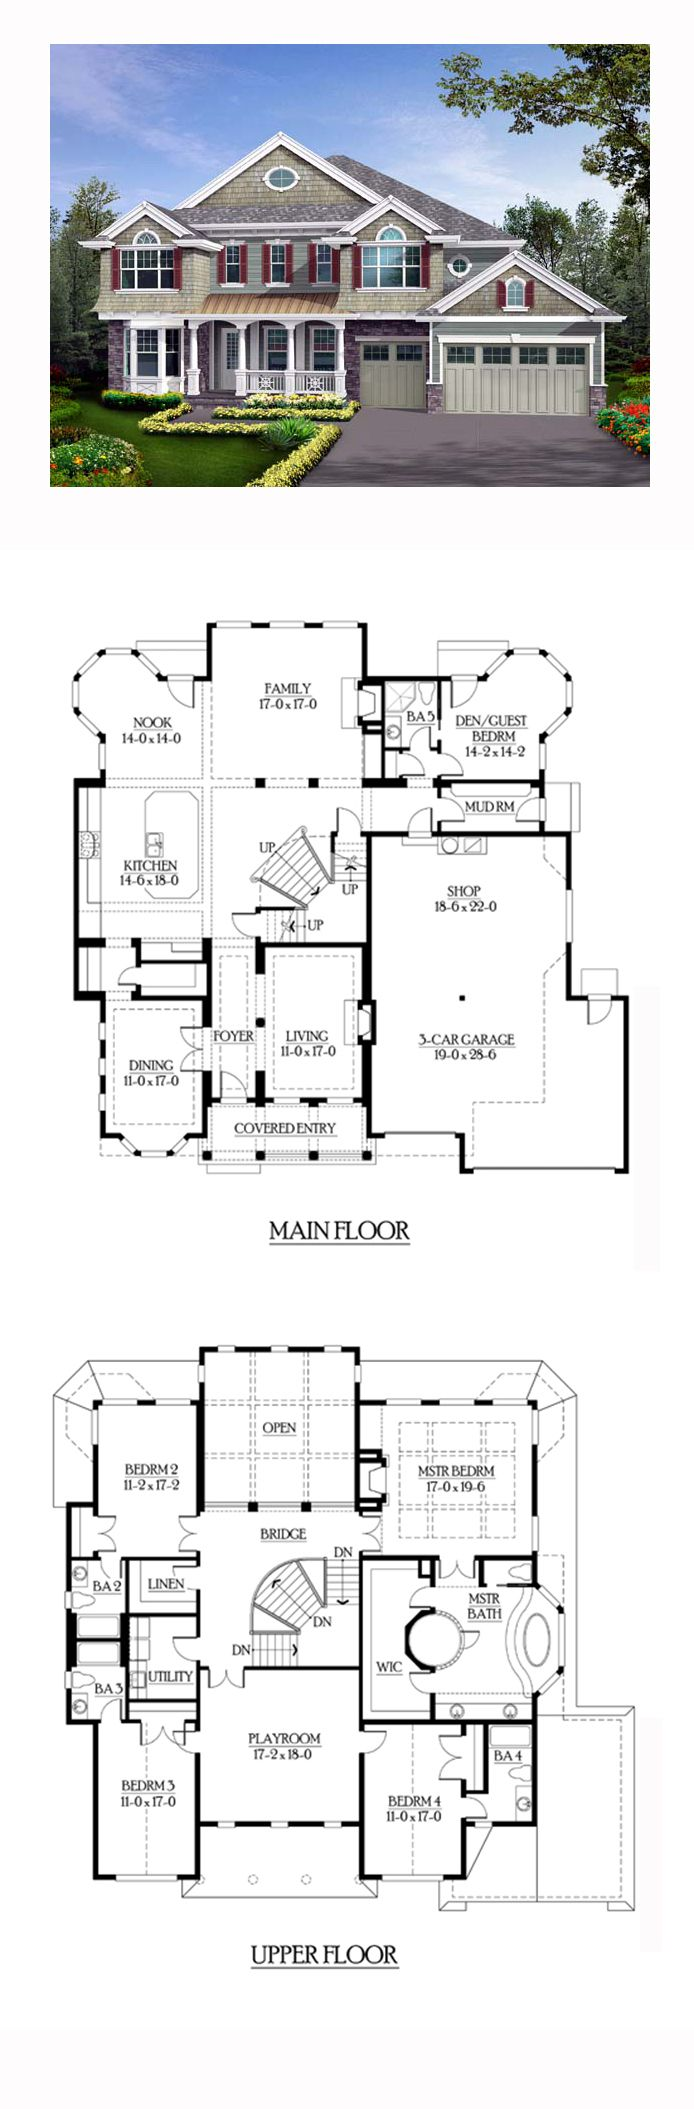 25 best Cool House Plans ideas on Pinterest Small home plans